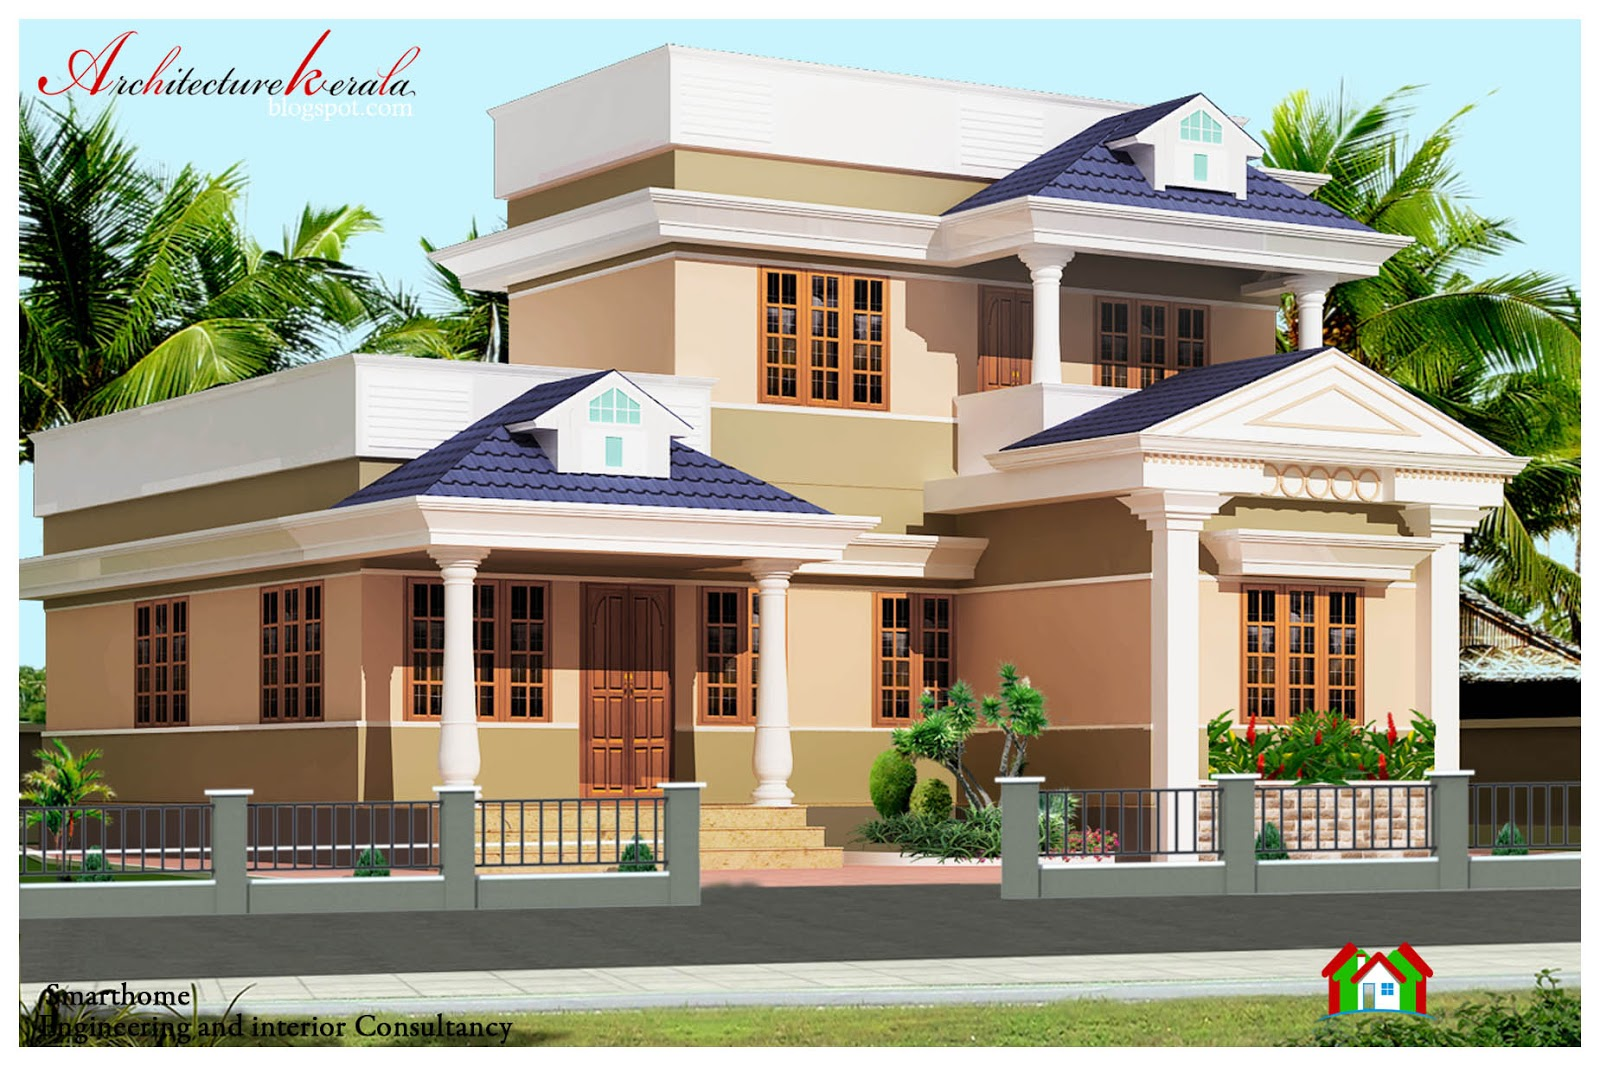 Architecture kerala 1000 sq ft kerala style house plan for Kerala home design 1000 sq feet